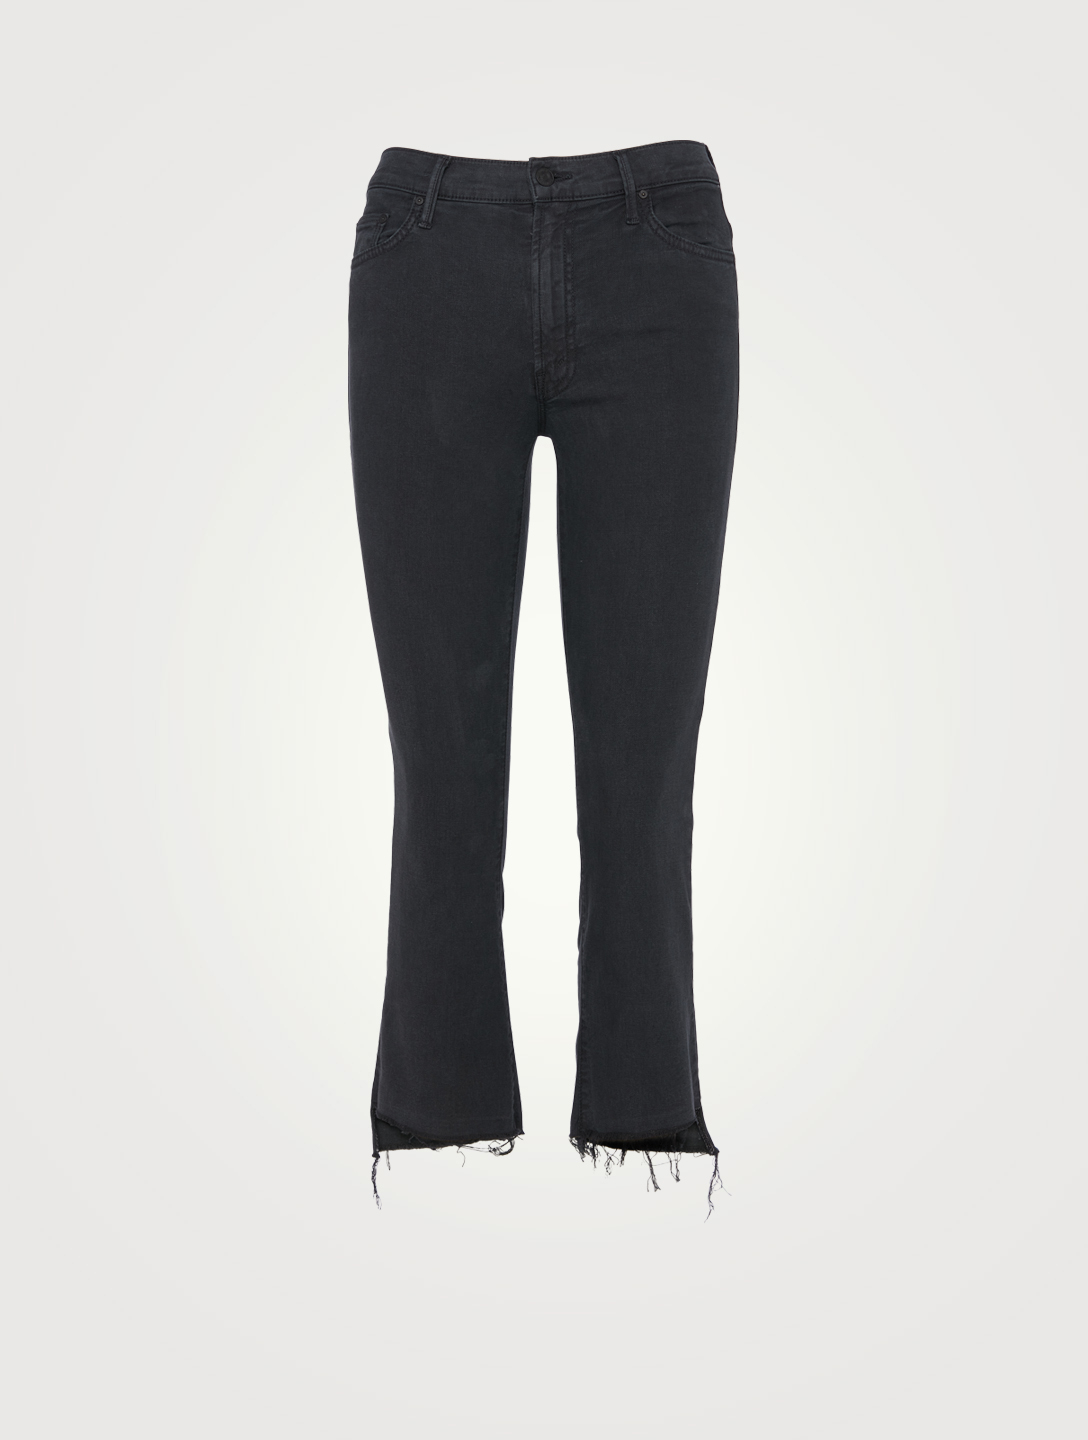 MOTHER Insider Crop Jeans With Step Fray Women's Black